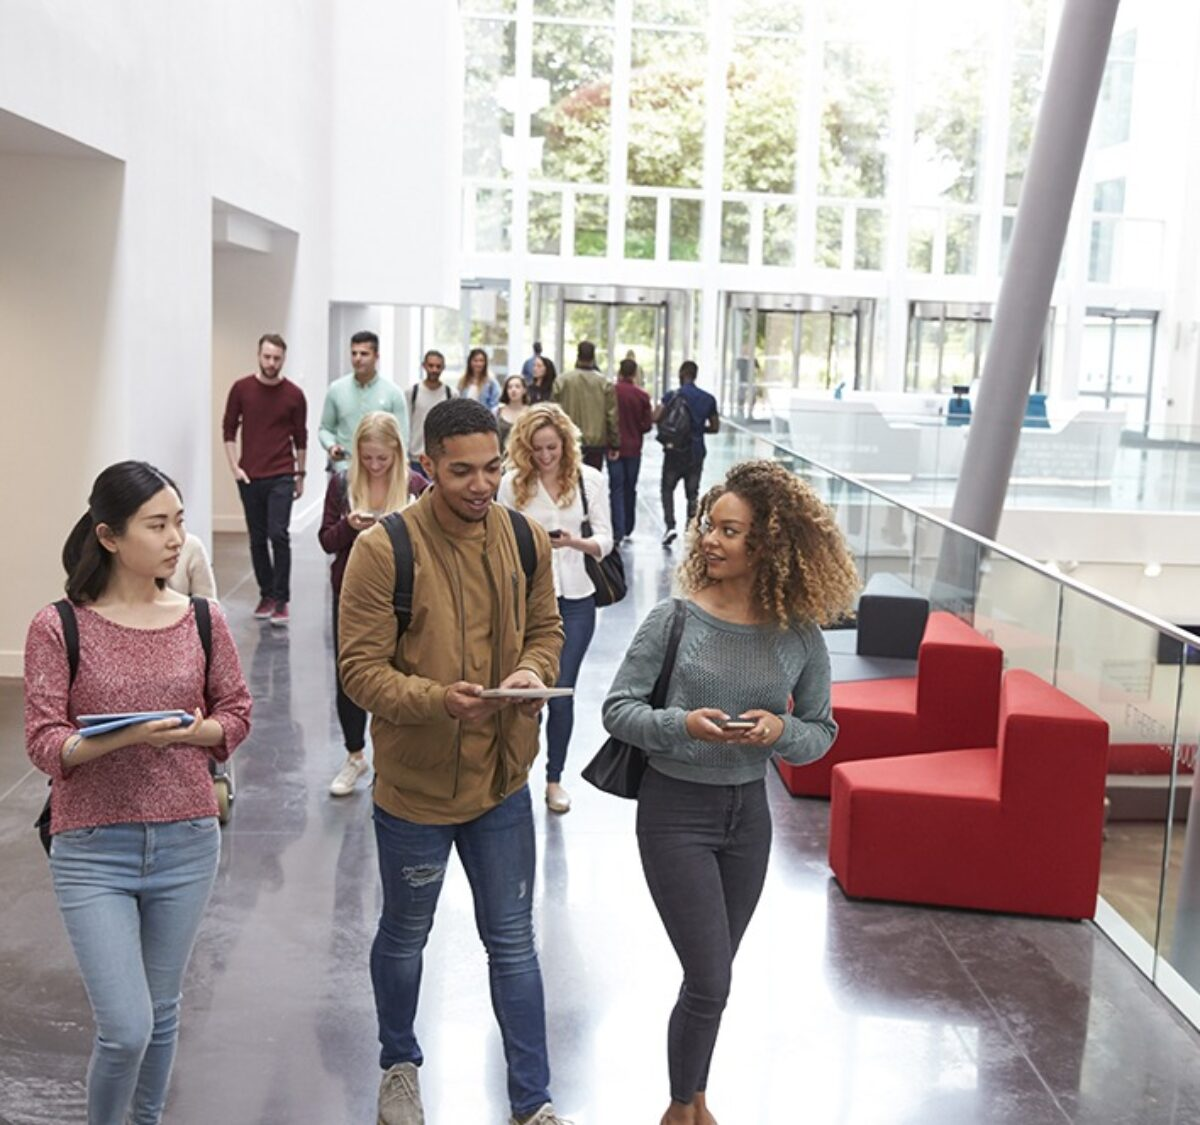 https://www.badgy.com/wp-content/uploads/2021/05/students-in-their-university.jpg